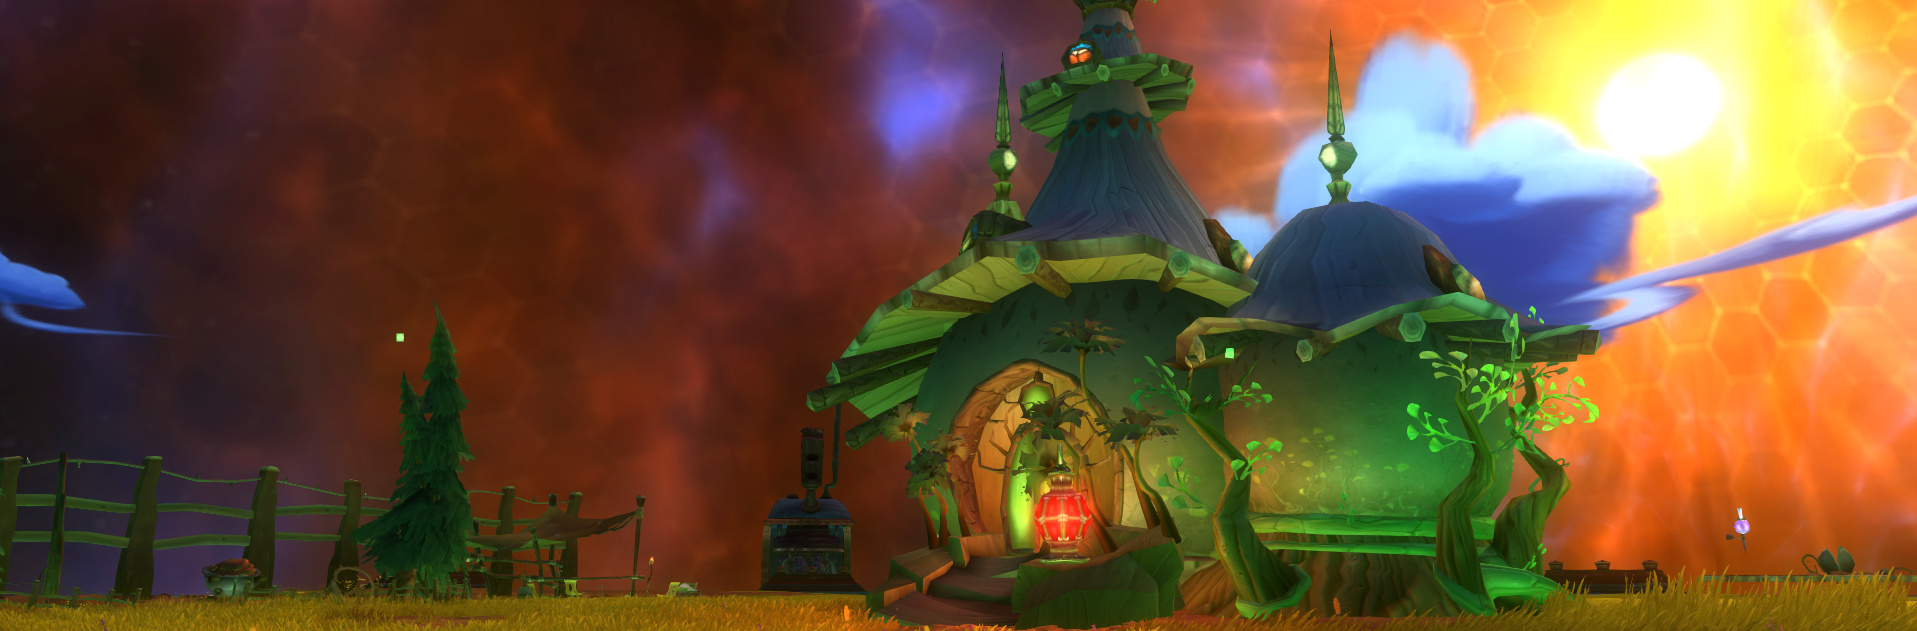 Welcome to the Wildstar Housing system. Prepare to have fun.